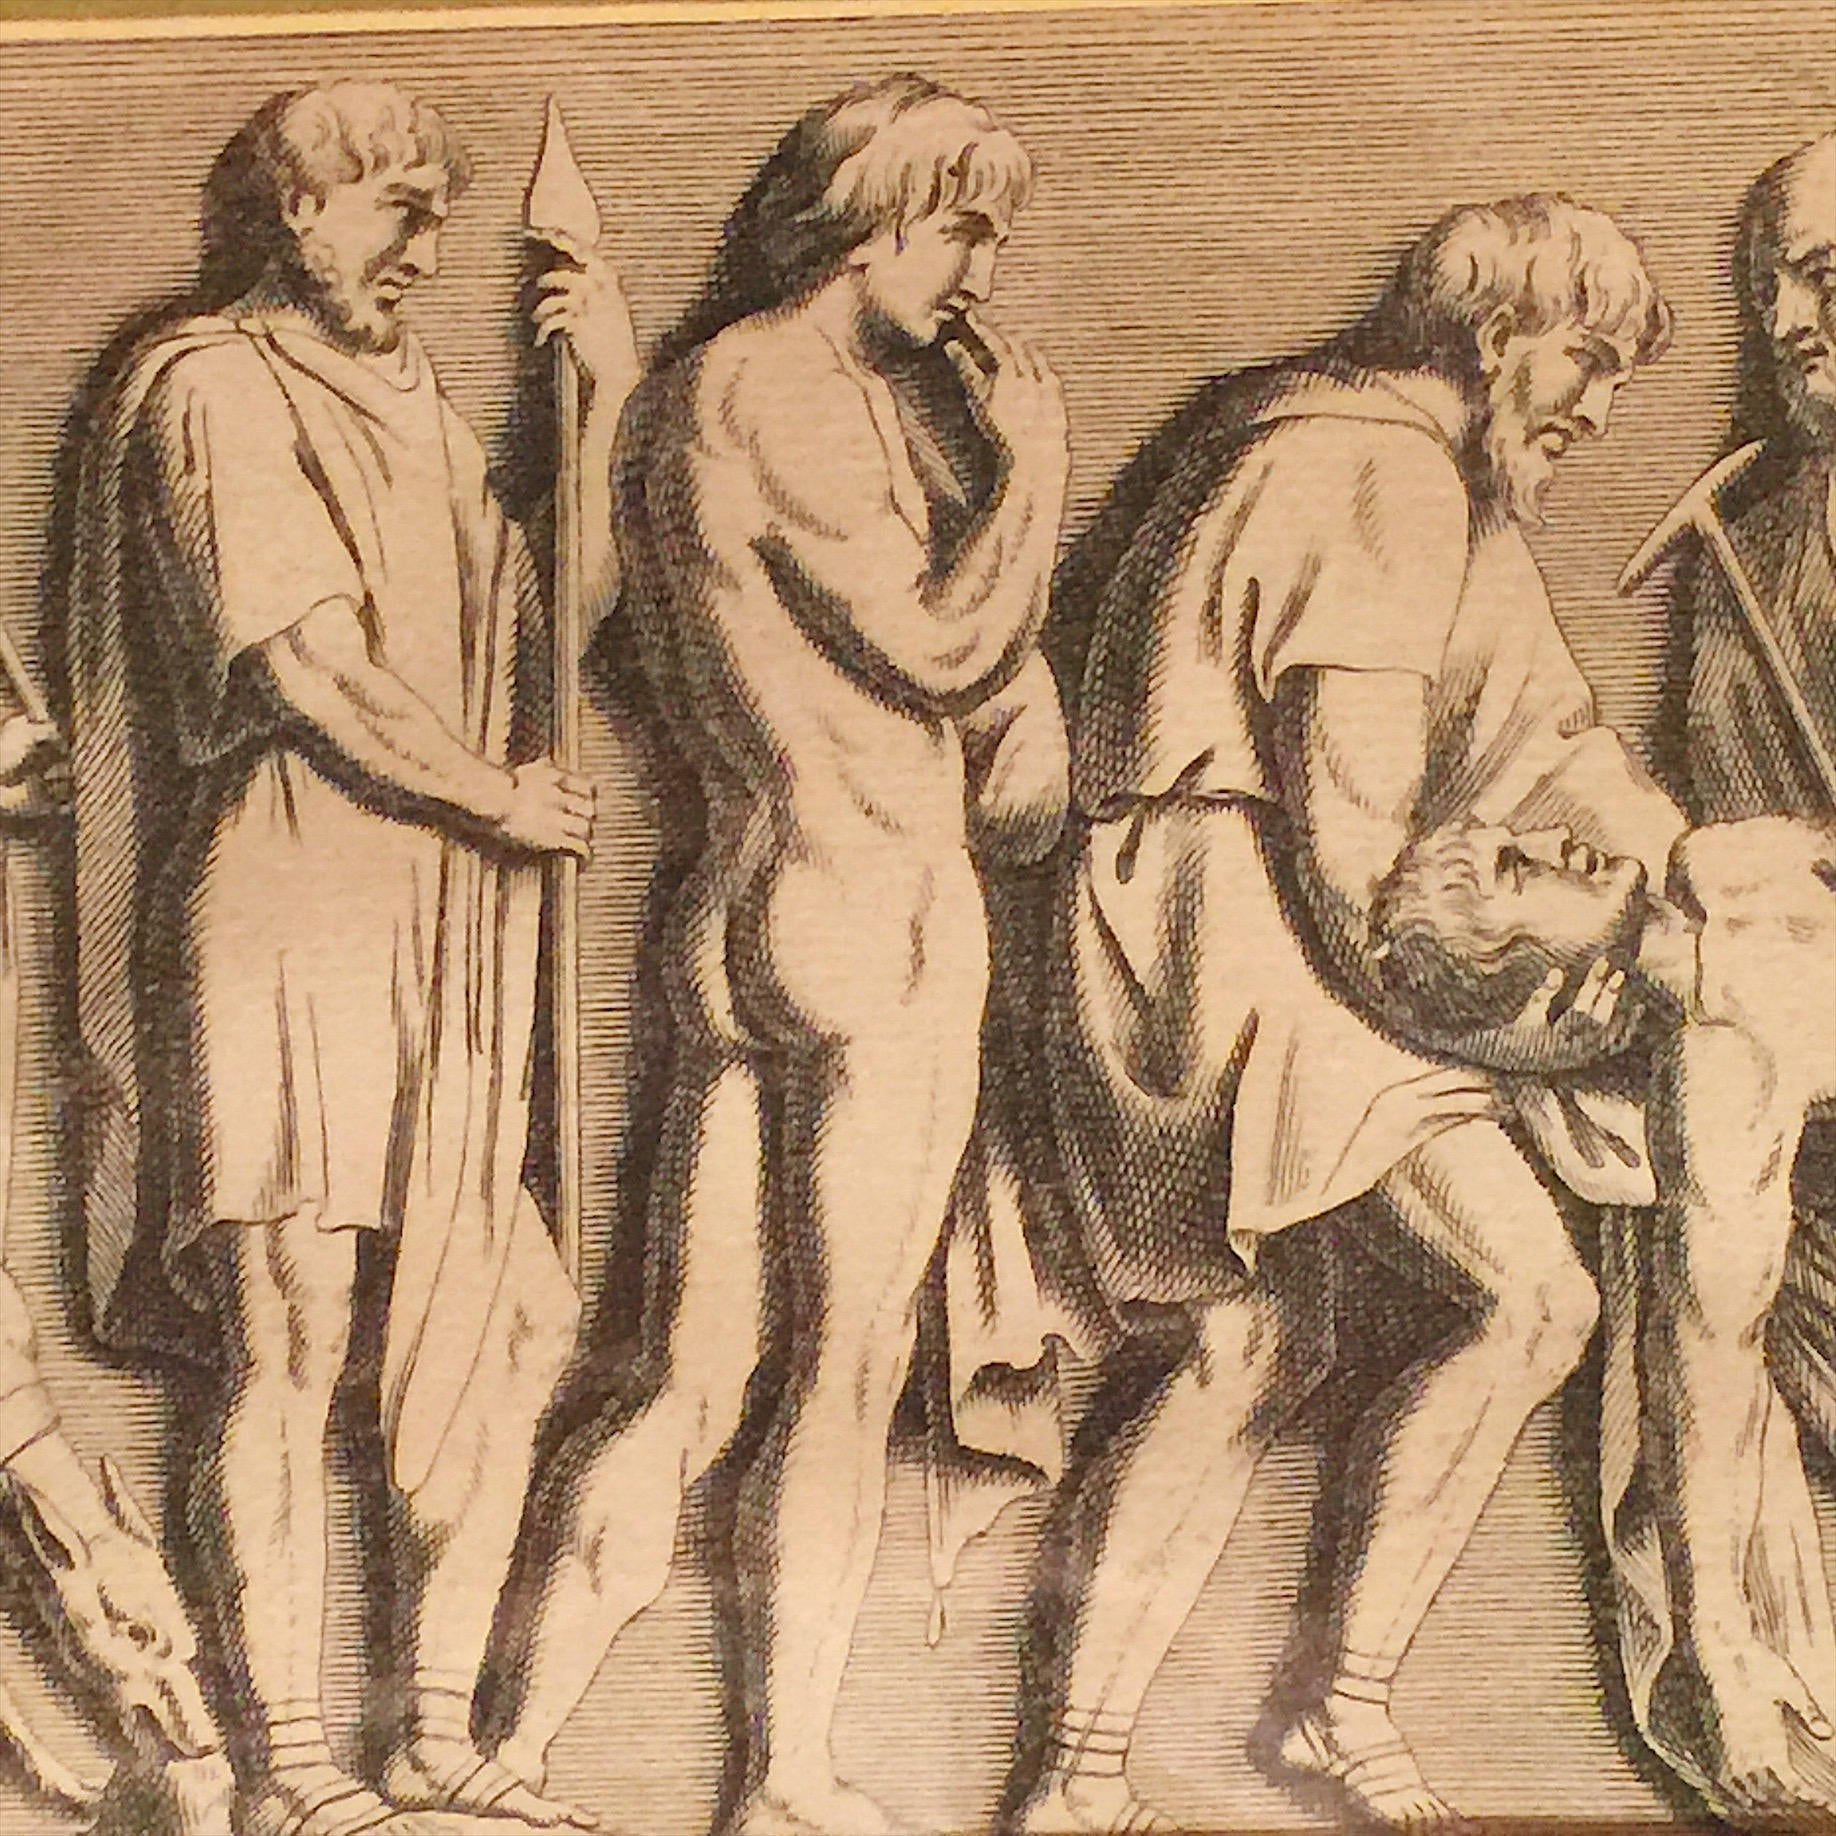 Rare Roman Funeral Procession Engraving - 1730 - Funeral Pyre Scene - Classical Roman Engraving - Morbid Wall Art - Funeral Death Scene